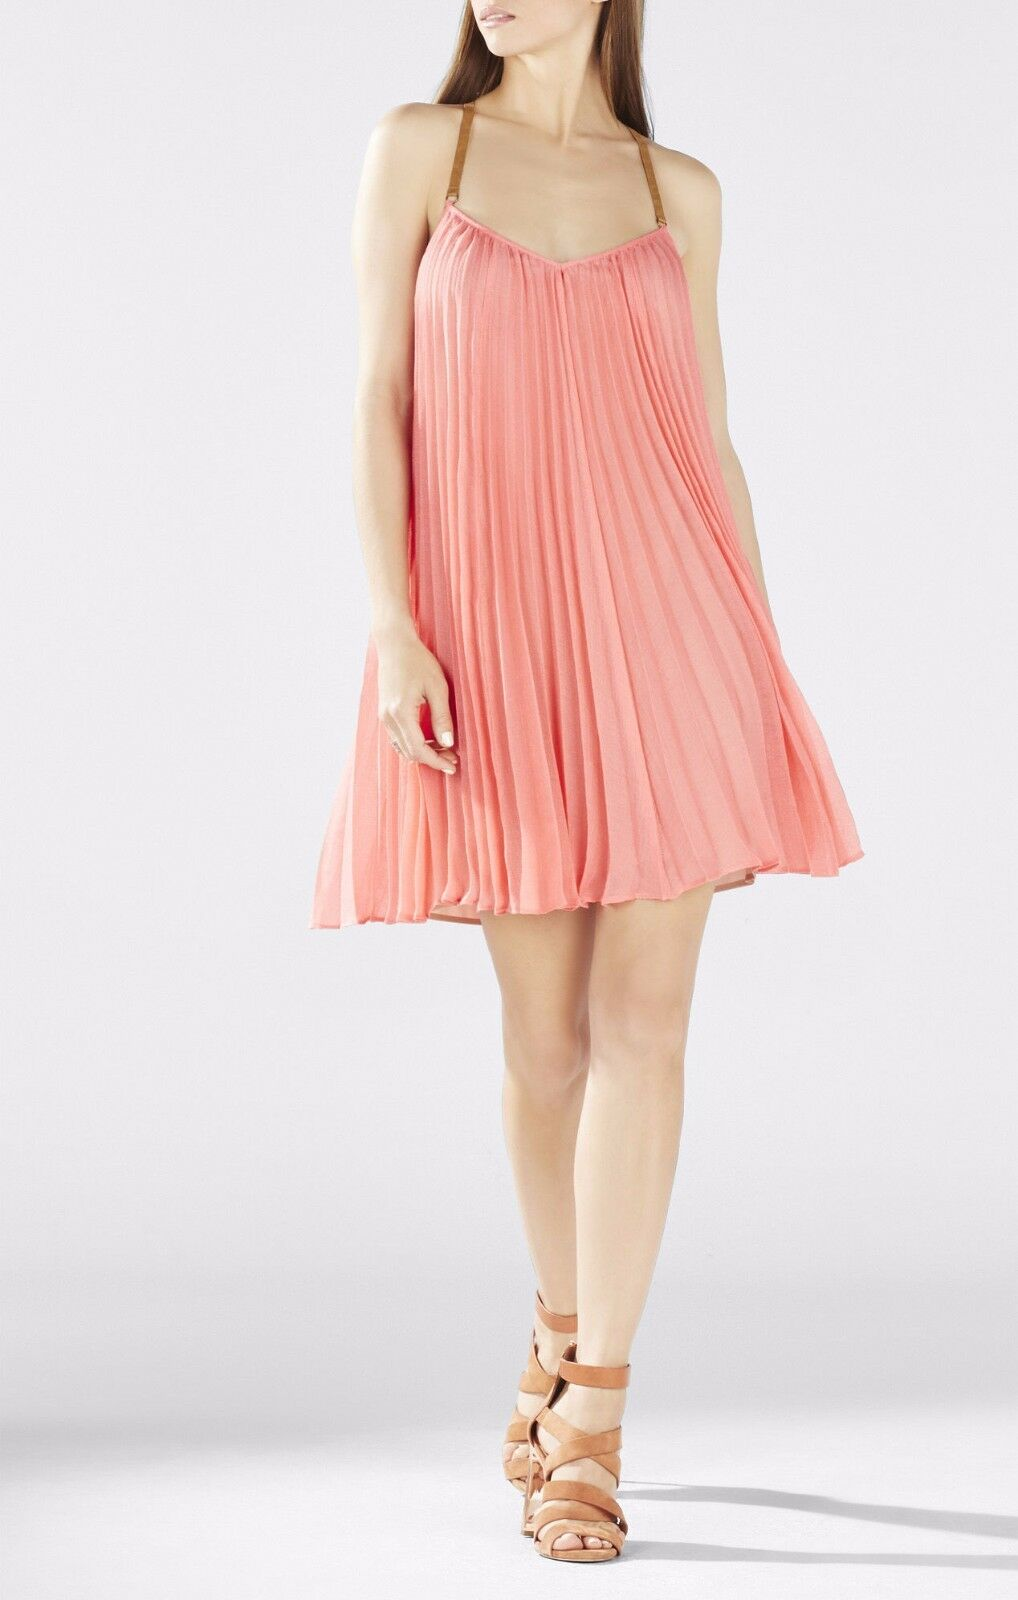 NEW BCBG CORAL CORAL CORAL REEF CAYANNE SLEEVELESS PLEATED DRESS SJG69D51 M634A SIZE M 192615